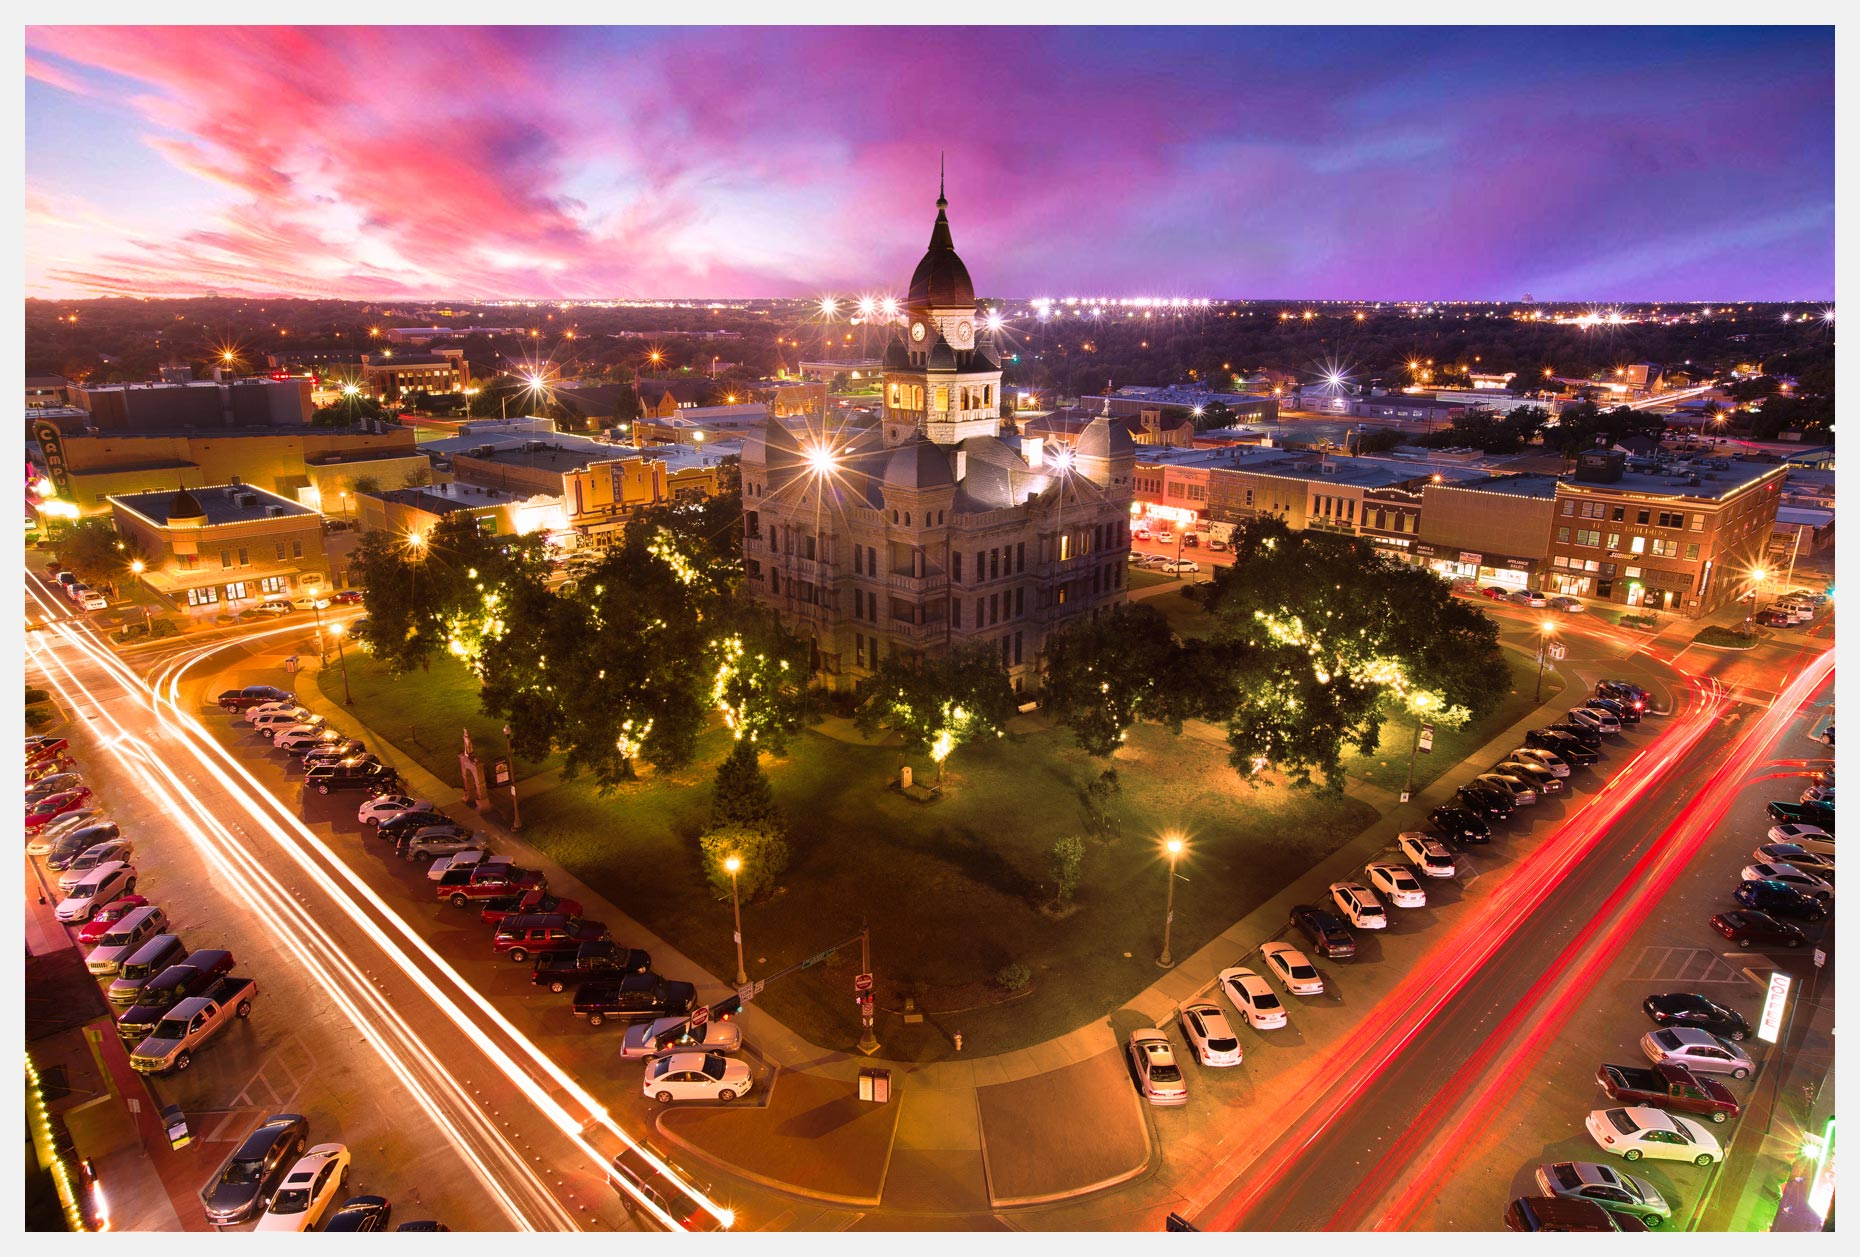 Denton-Texas-At-Sunset-With-Pink-Sky